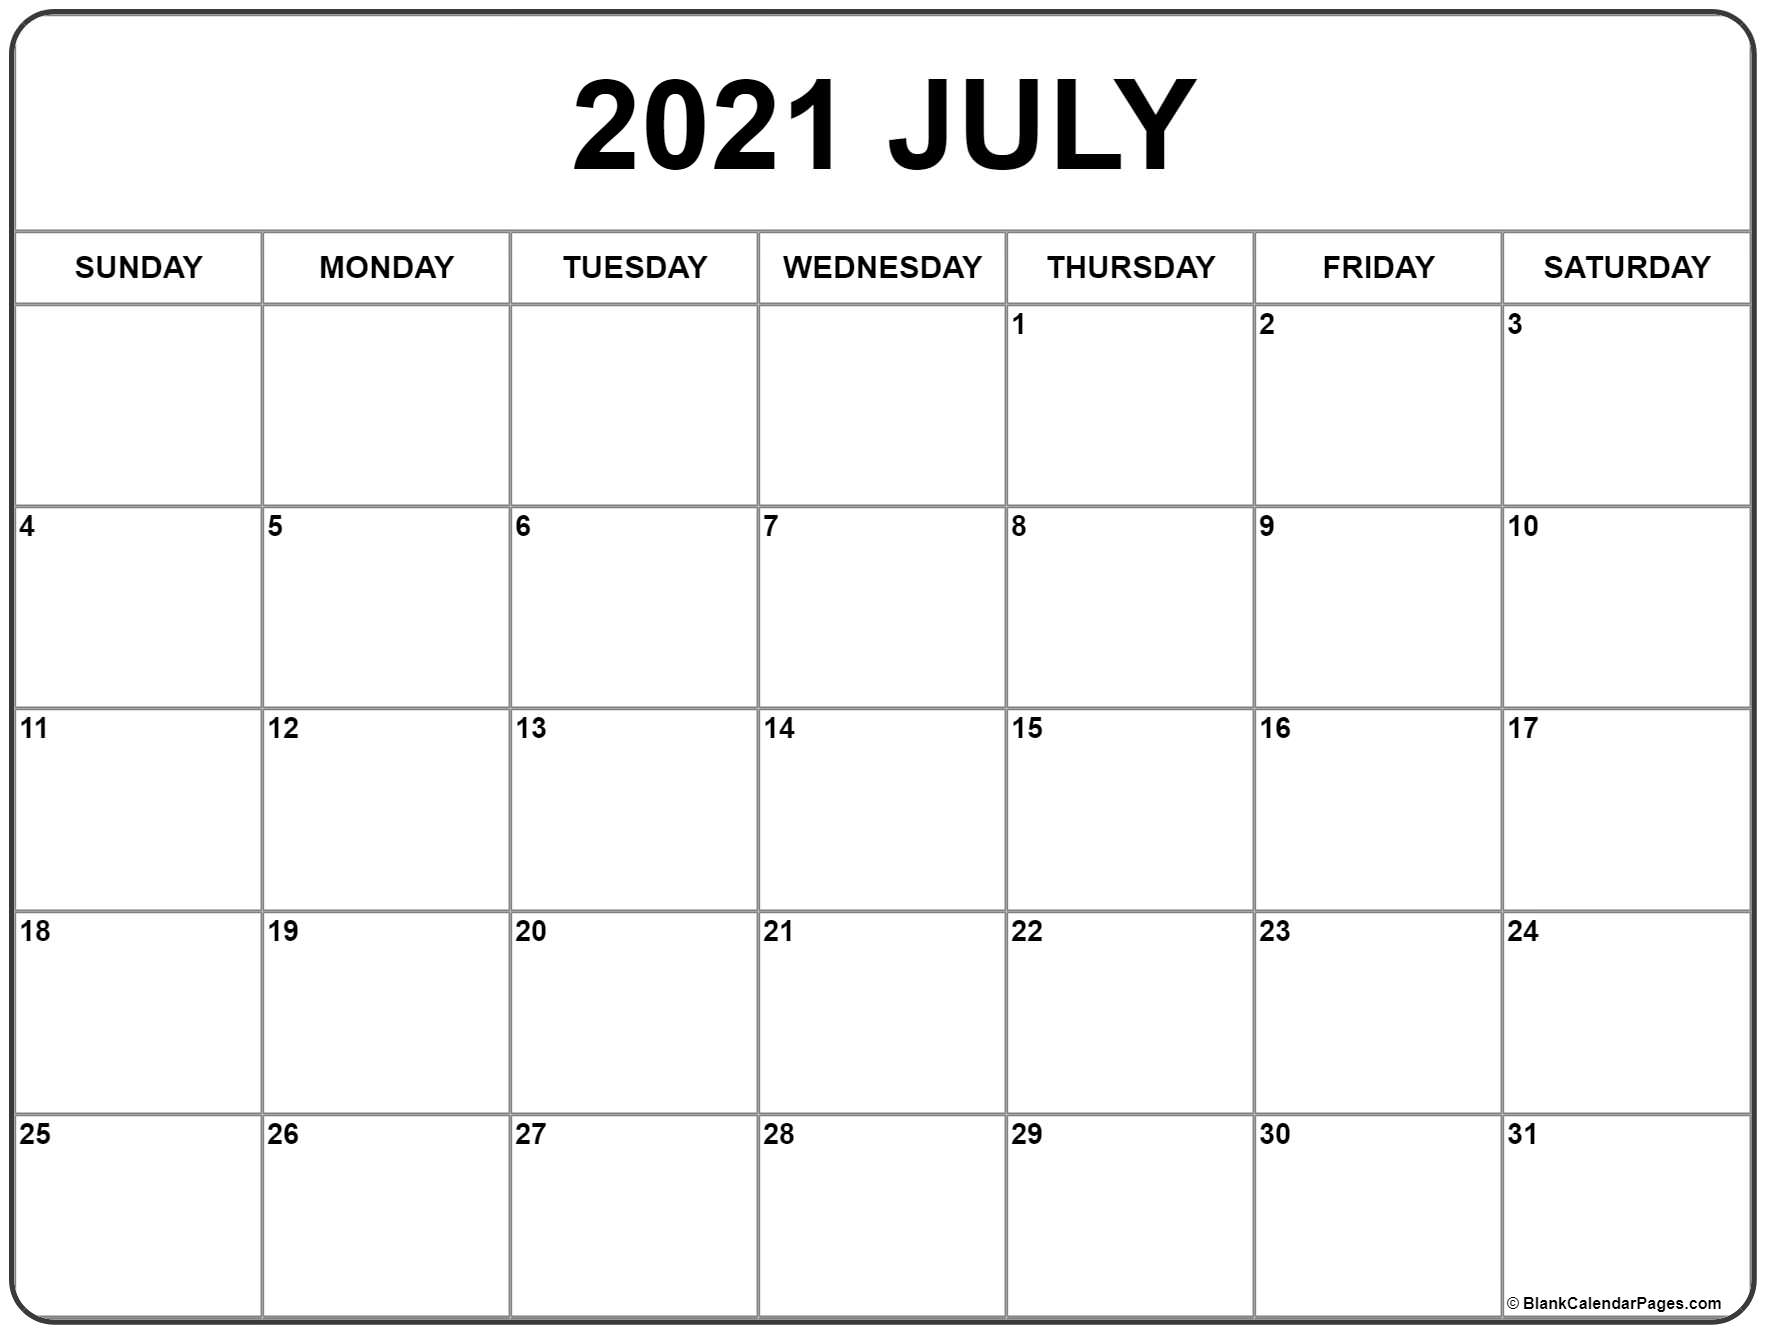 Get Calendar For June And July 2021